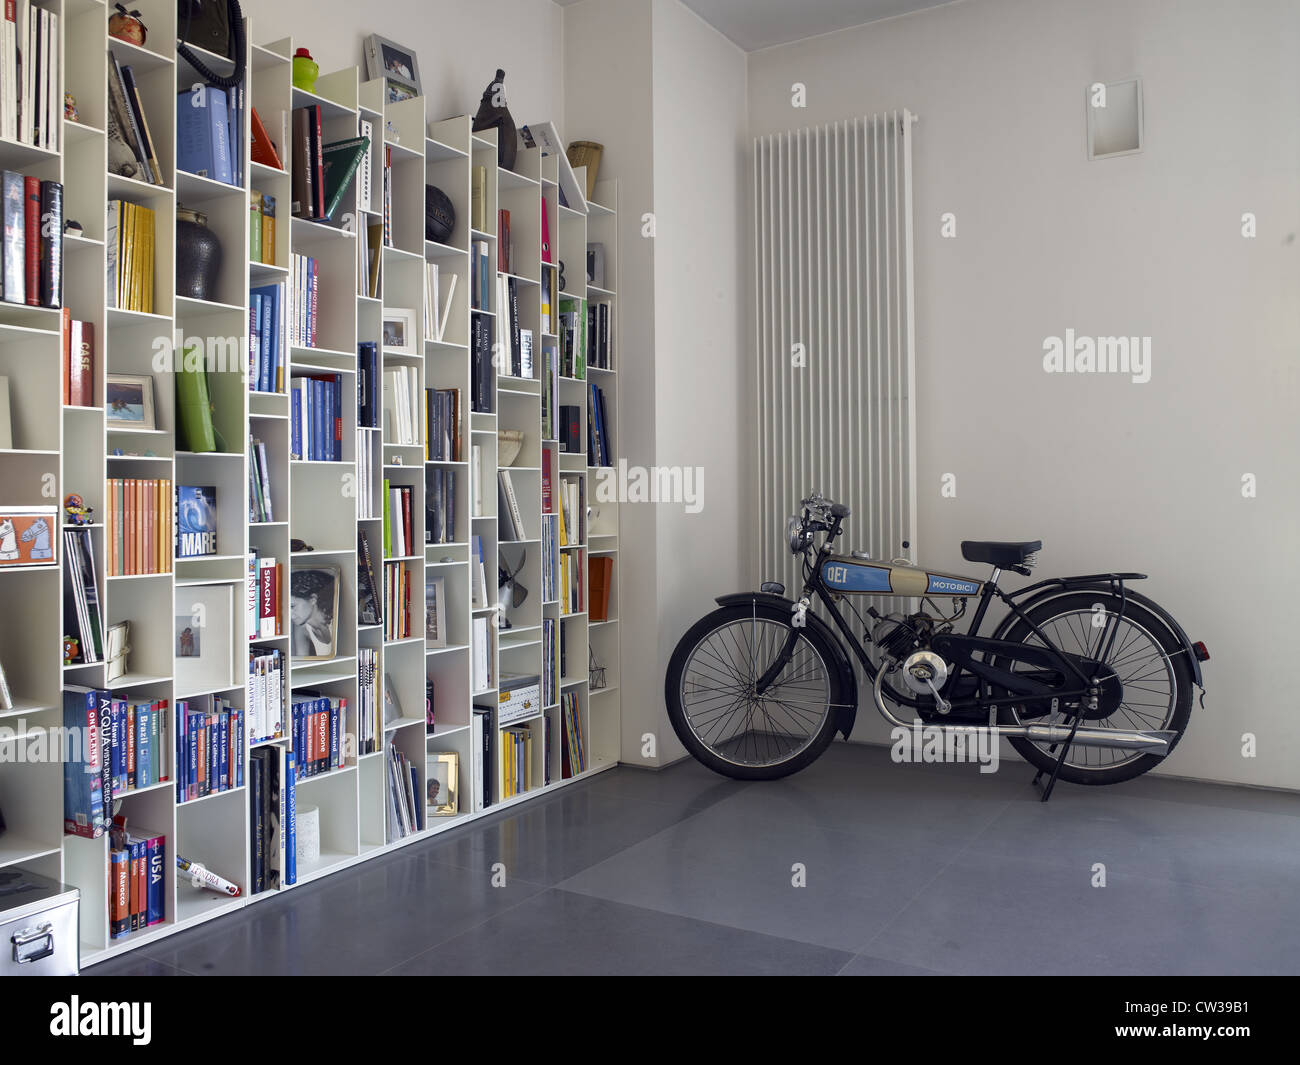 Living room in an italian apartment with an old motorbike parked - Stock Image